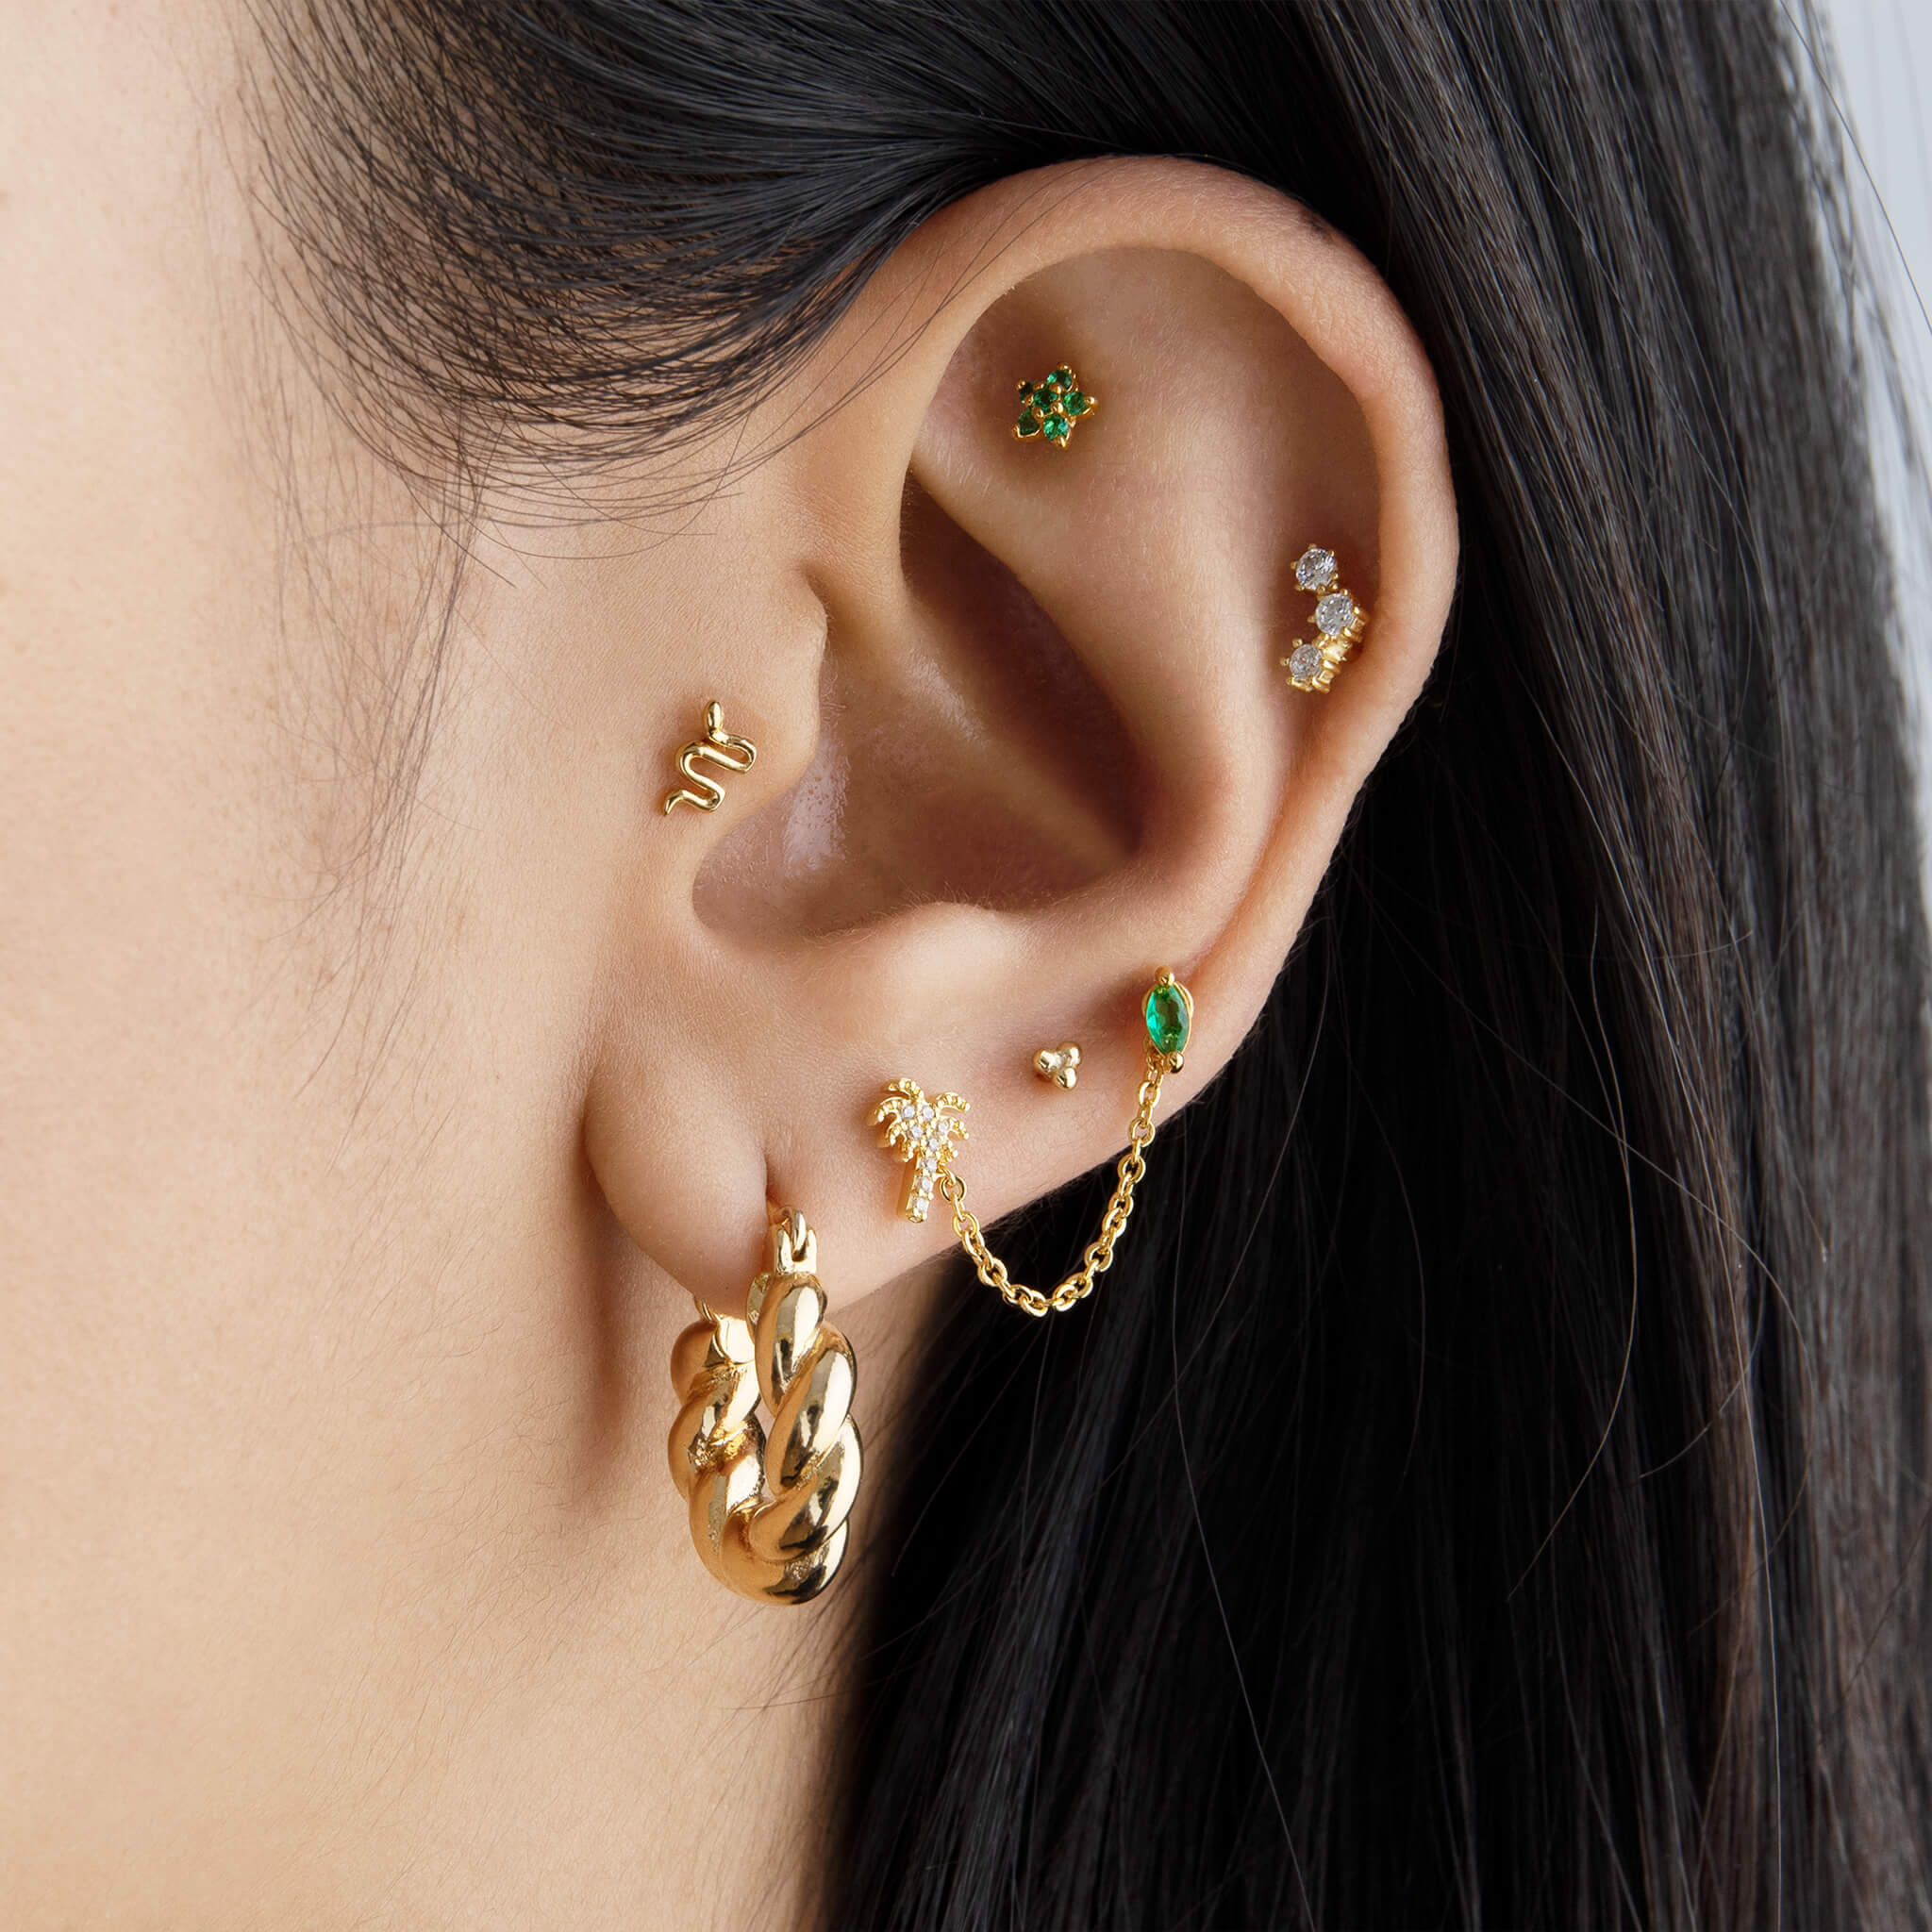 image of goldern earscape with a palm chain and snake